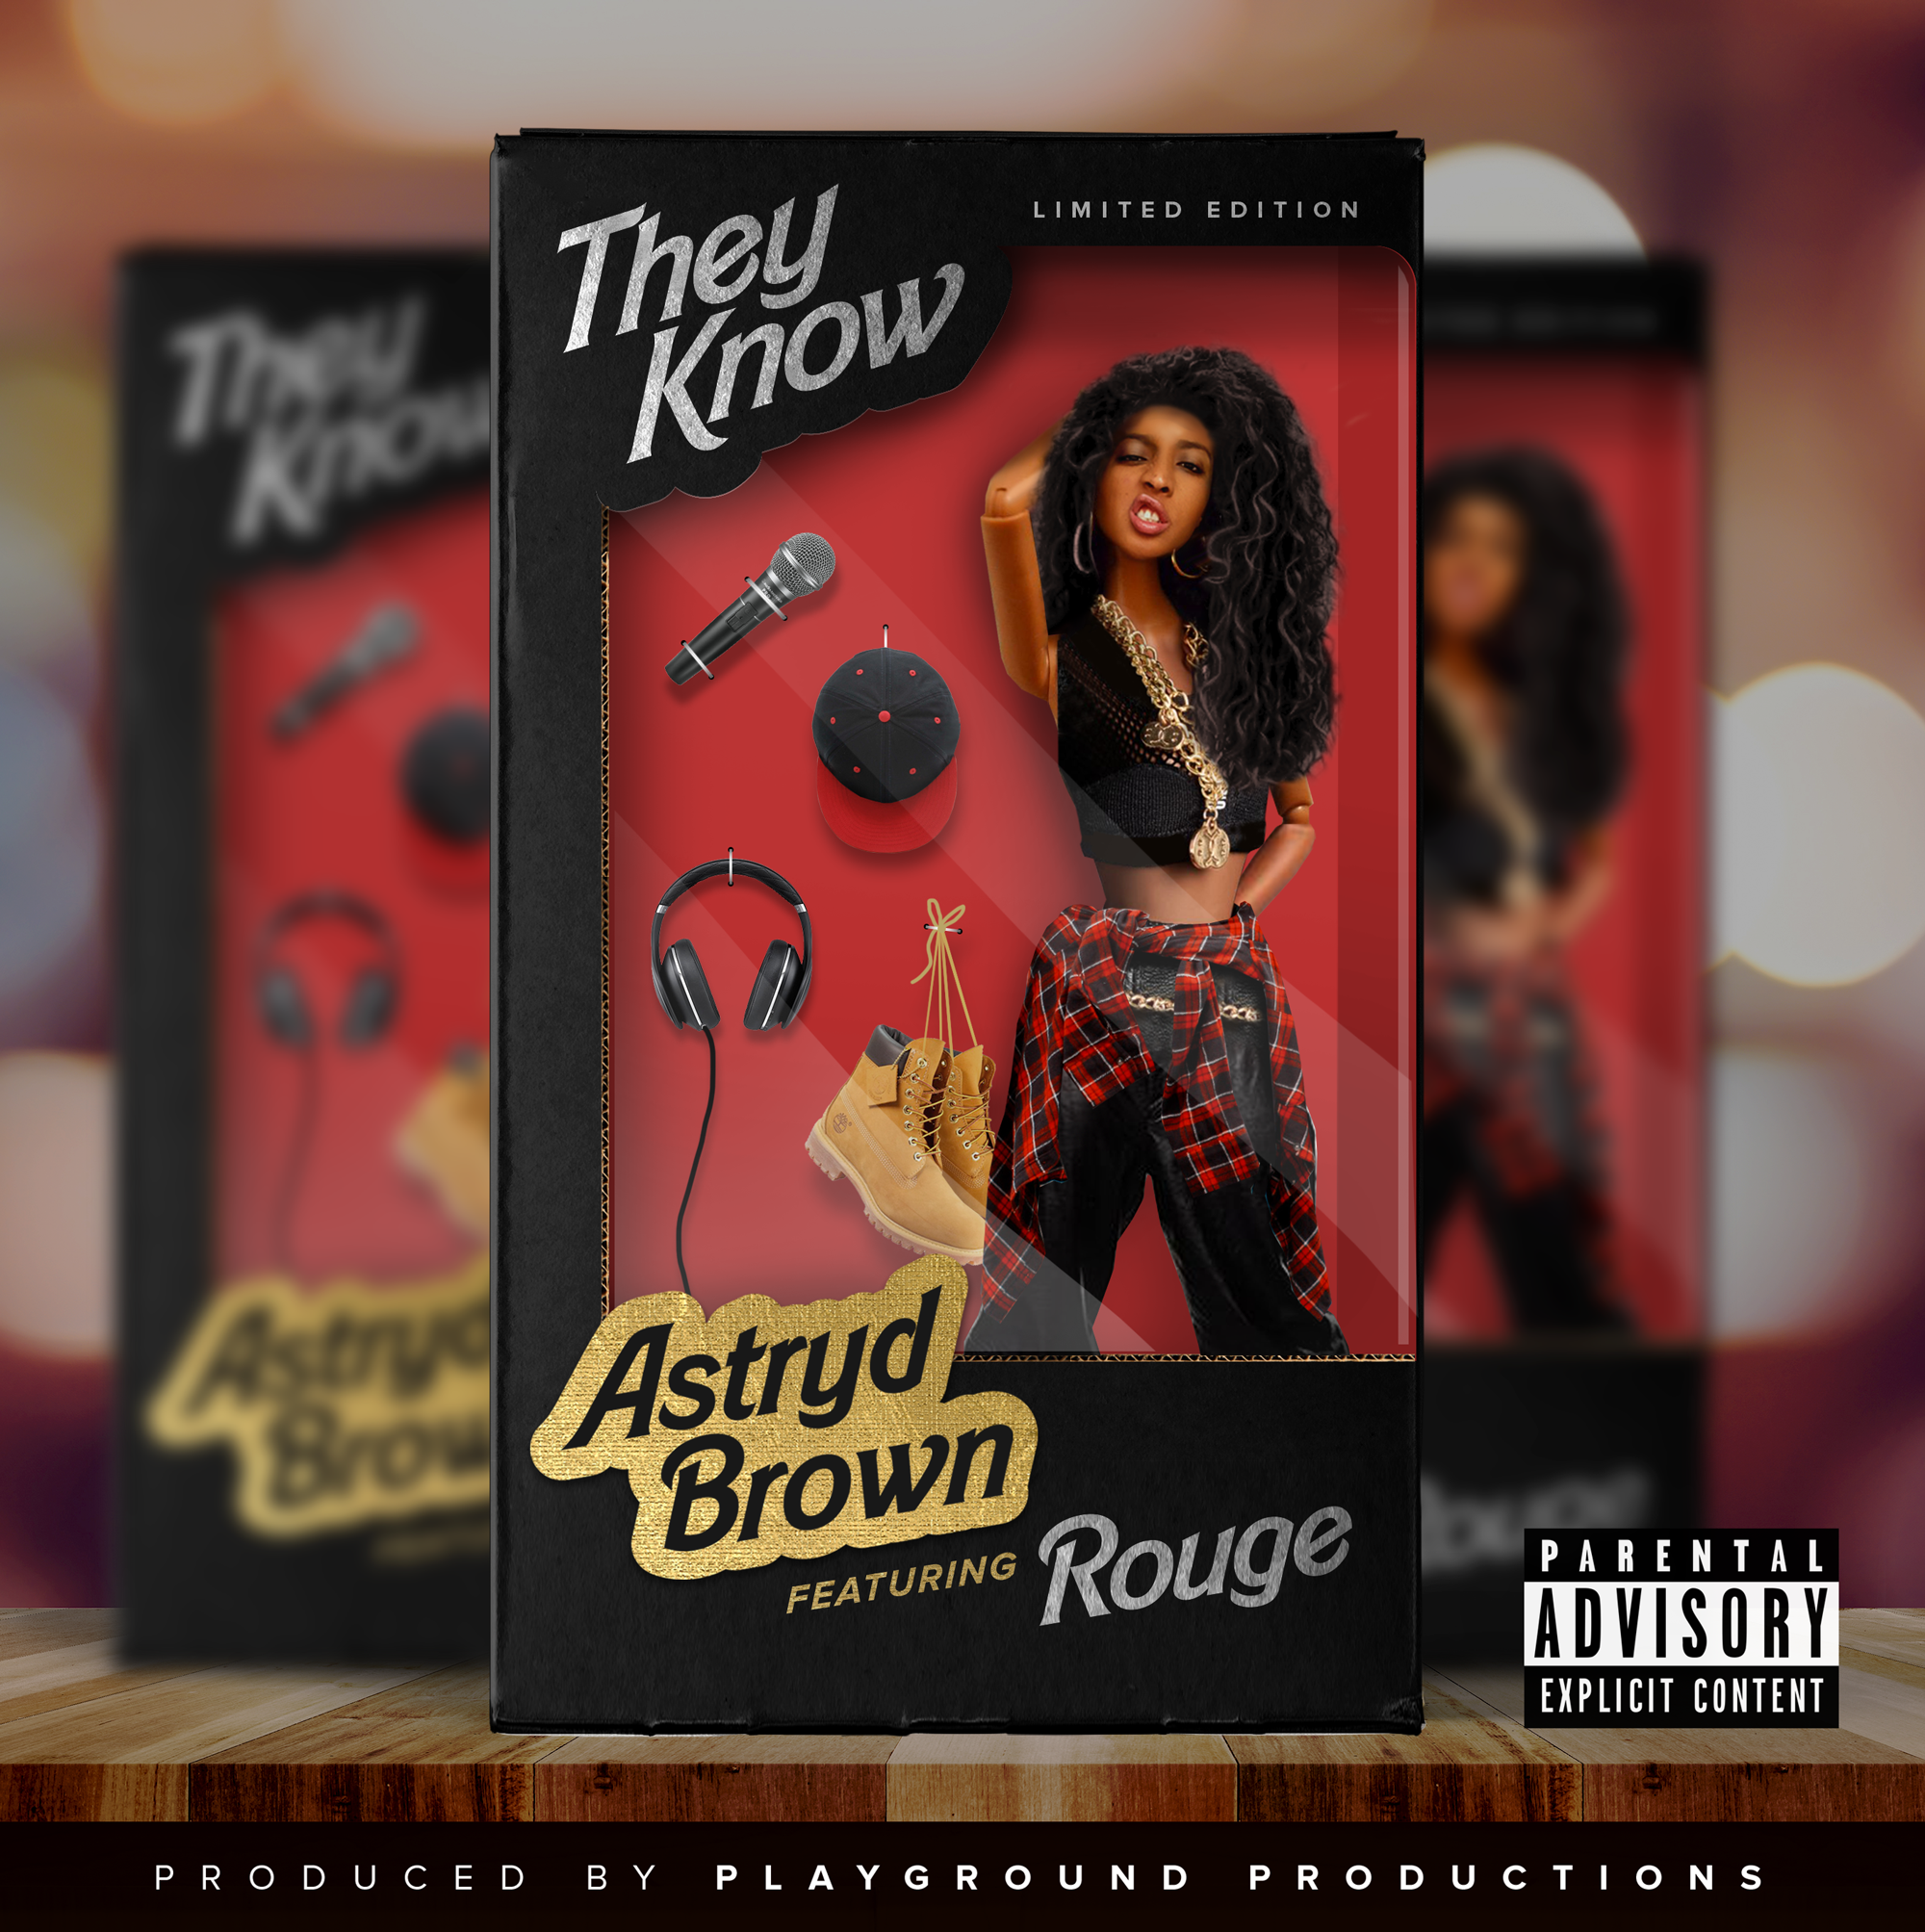 Astryd Brown Ft. Rouge Debut Single 'They Know' Dropping This Friday Astryd Brown Feat Rouge THEY KNOW Artwork